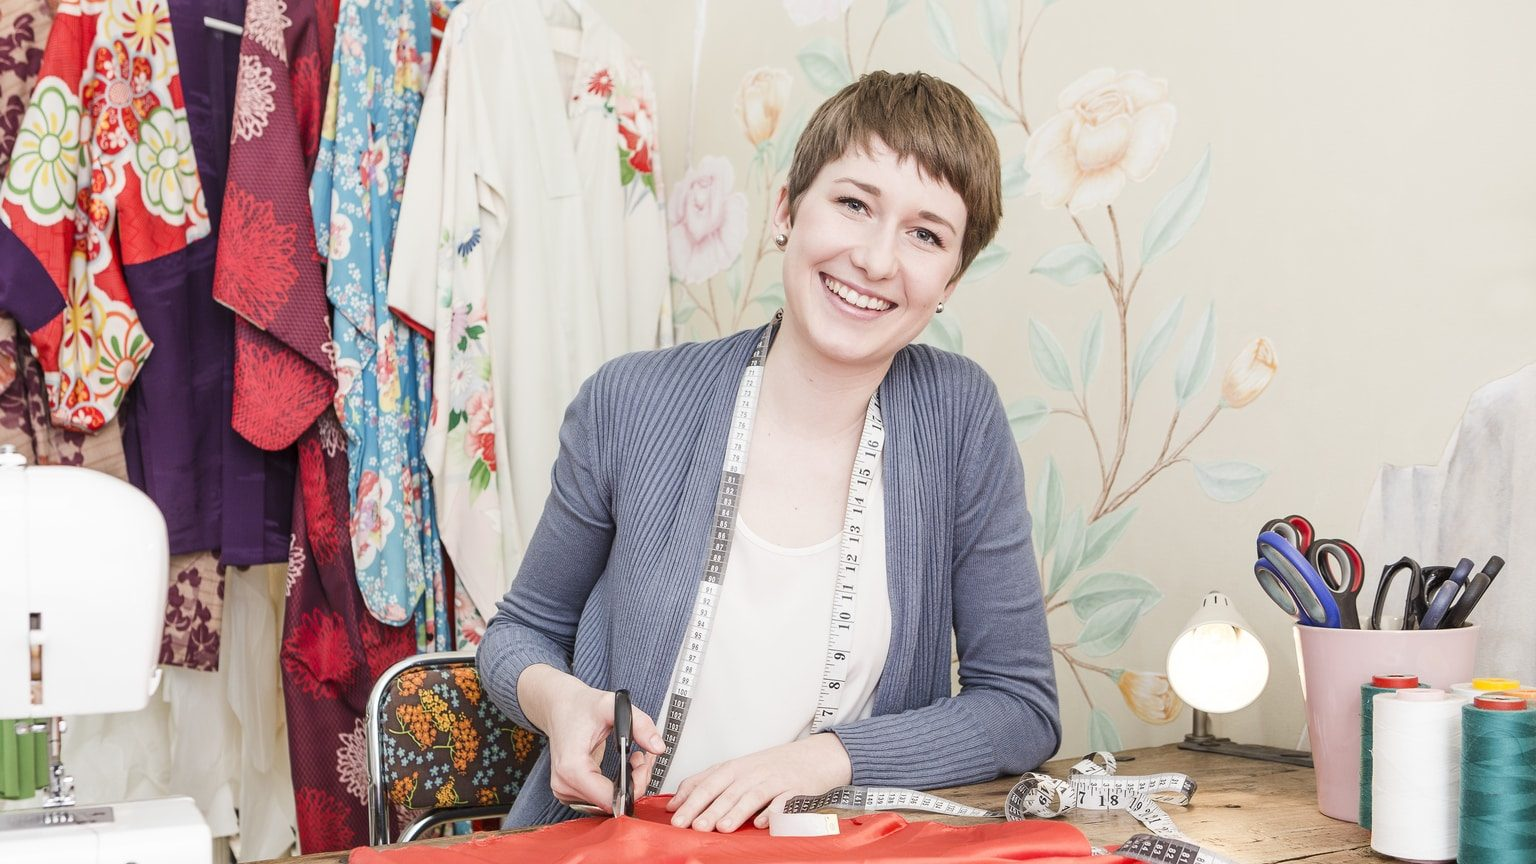 Smiling young woman sewing and doing crafts